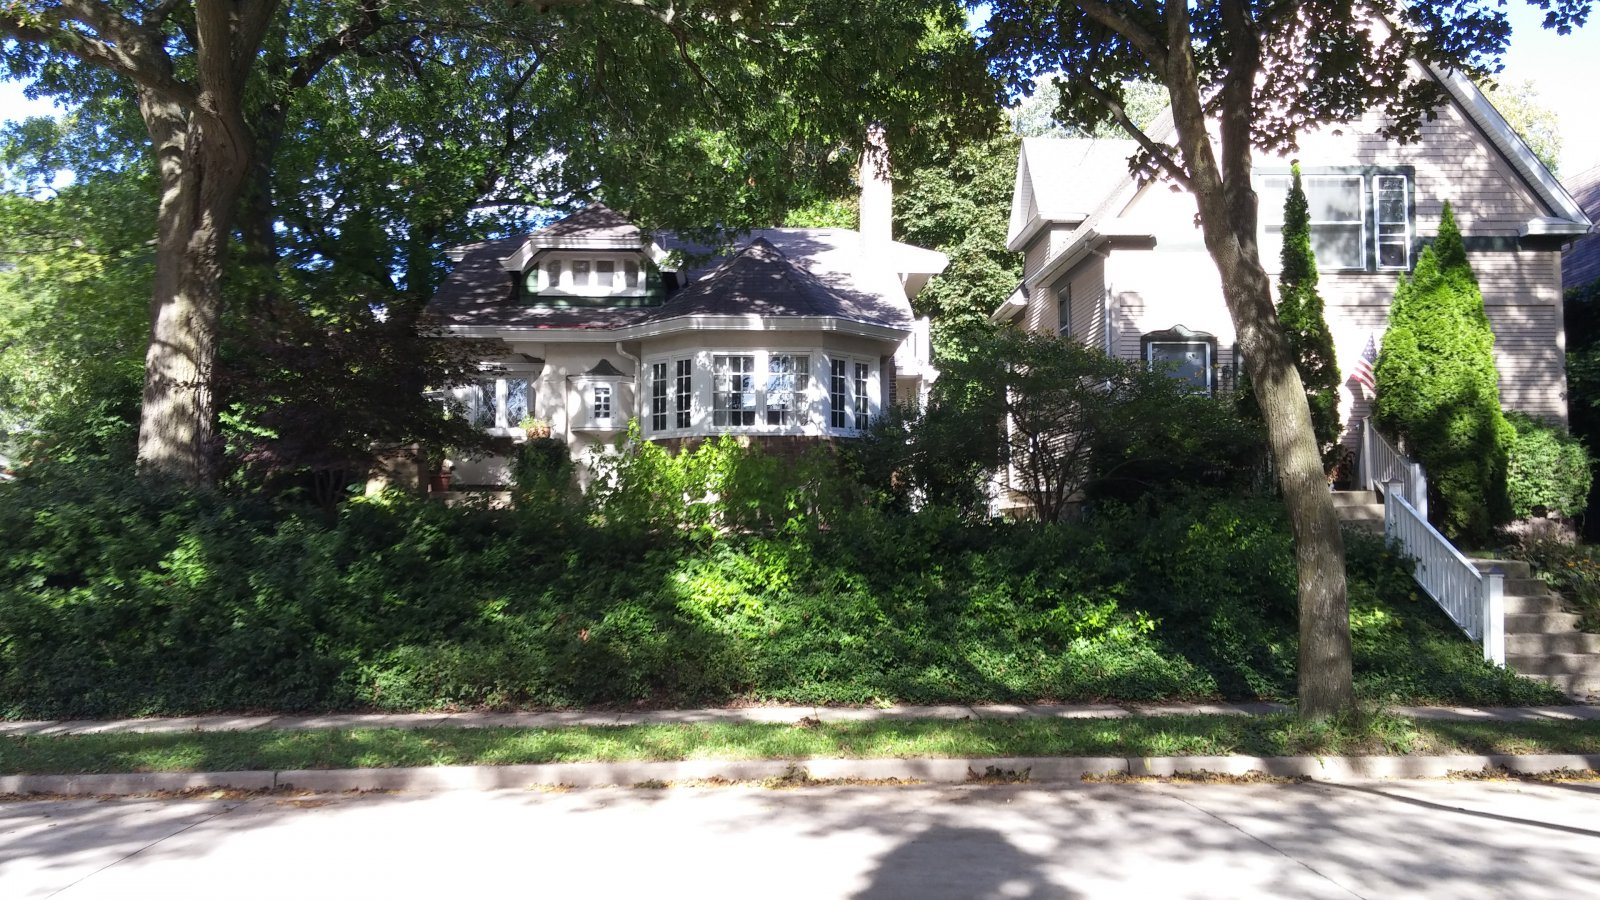 Home on S. Wentworth Avenue